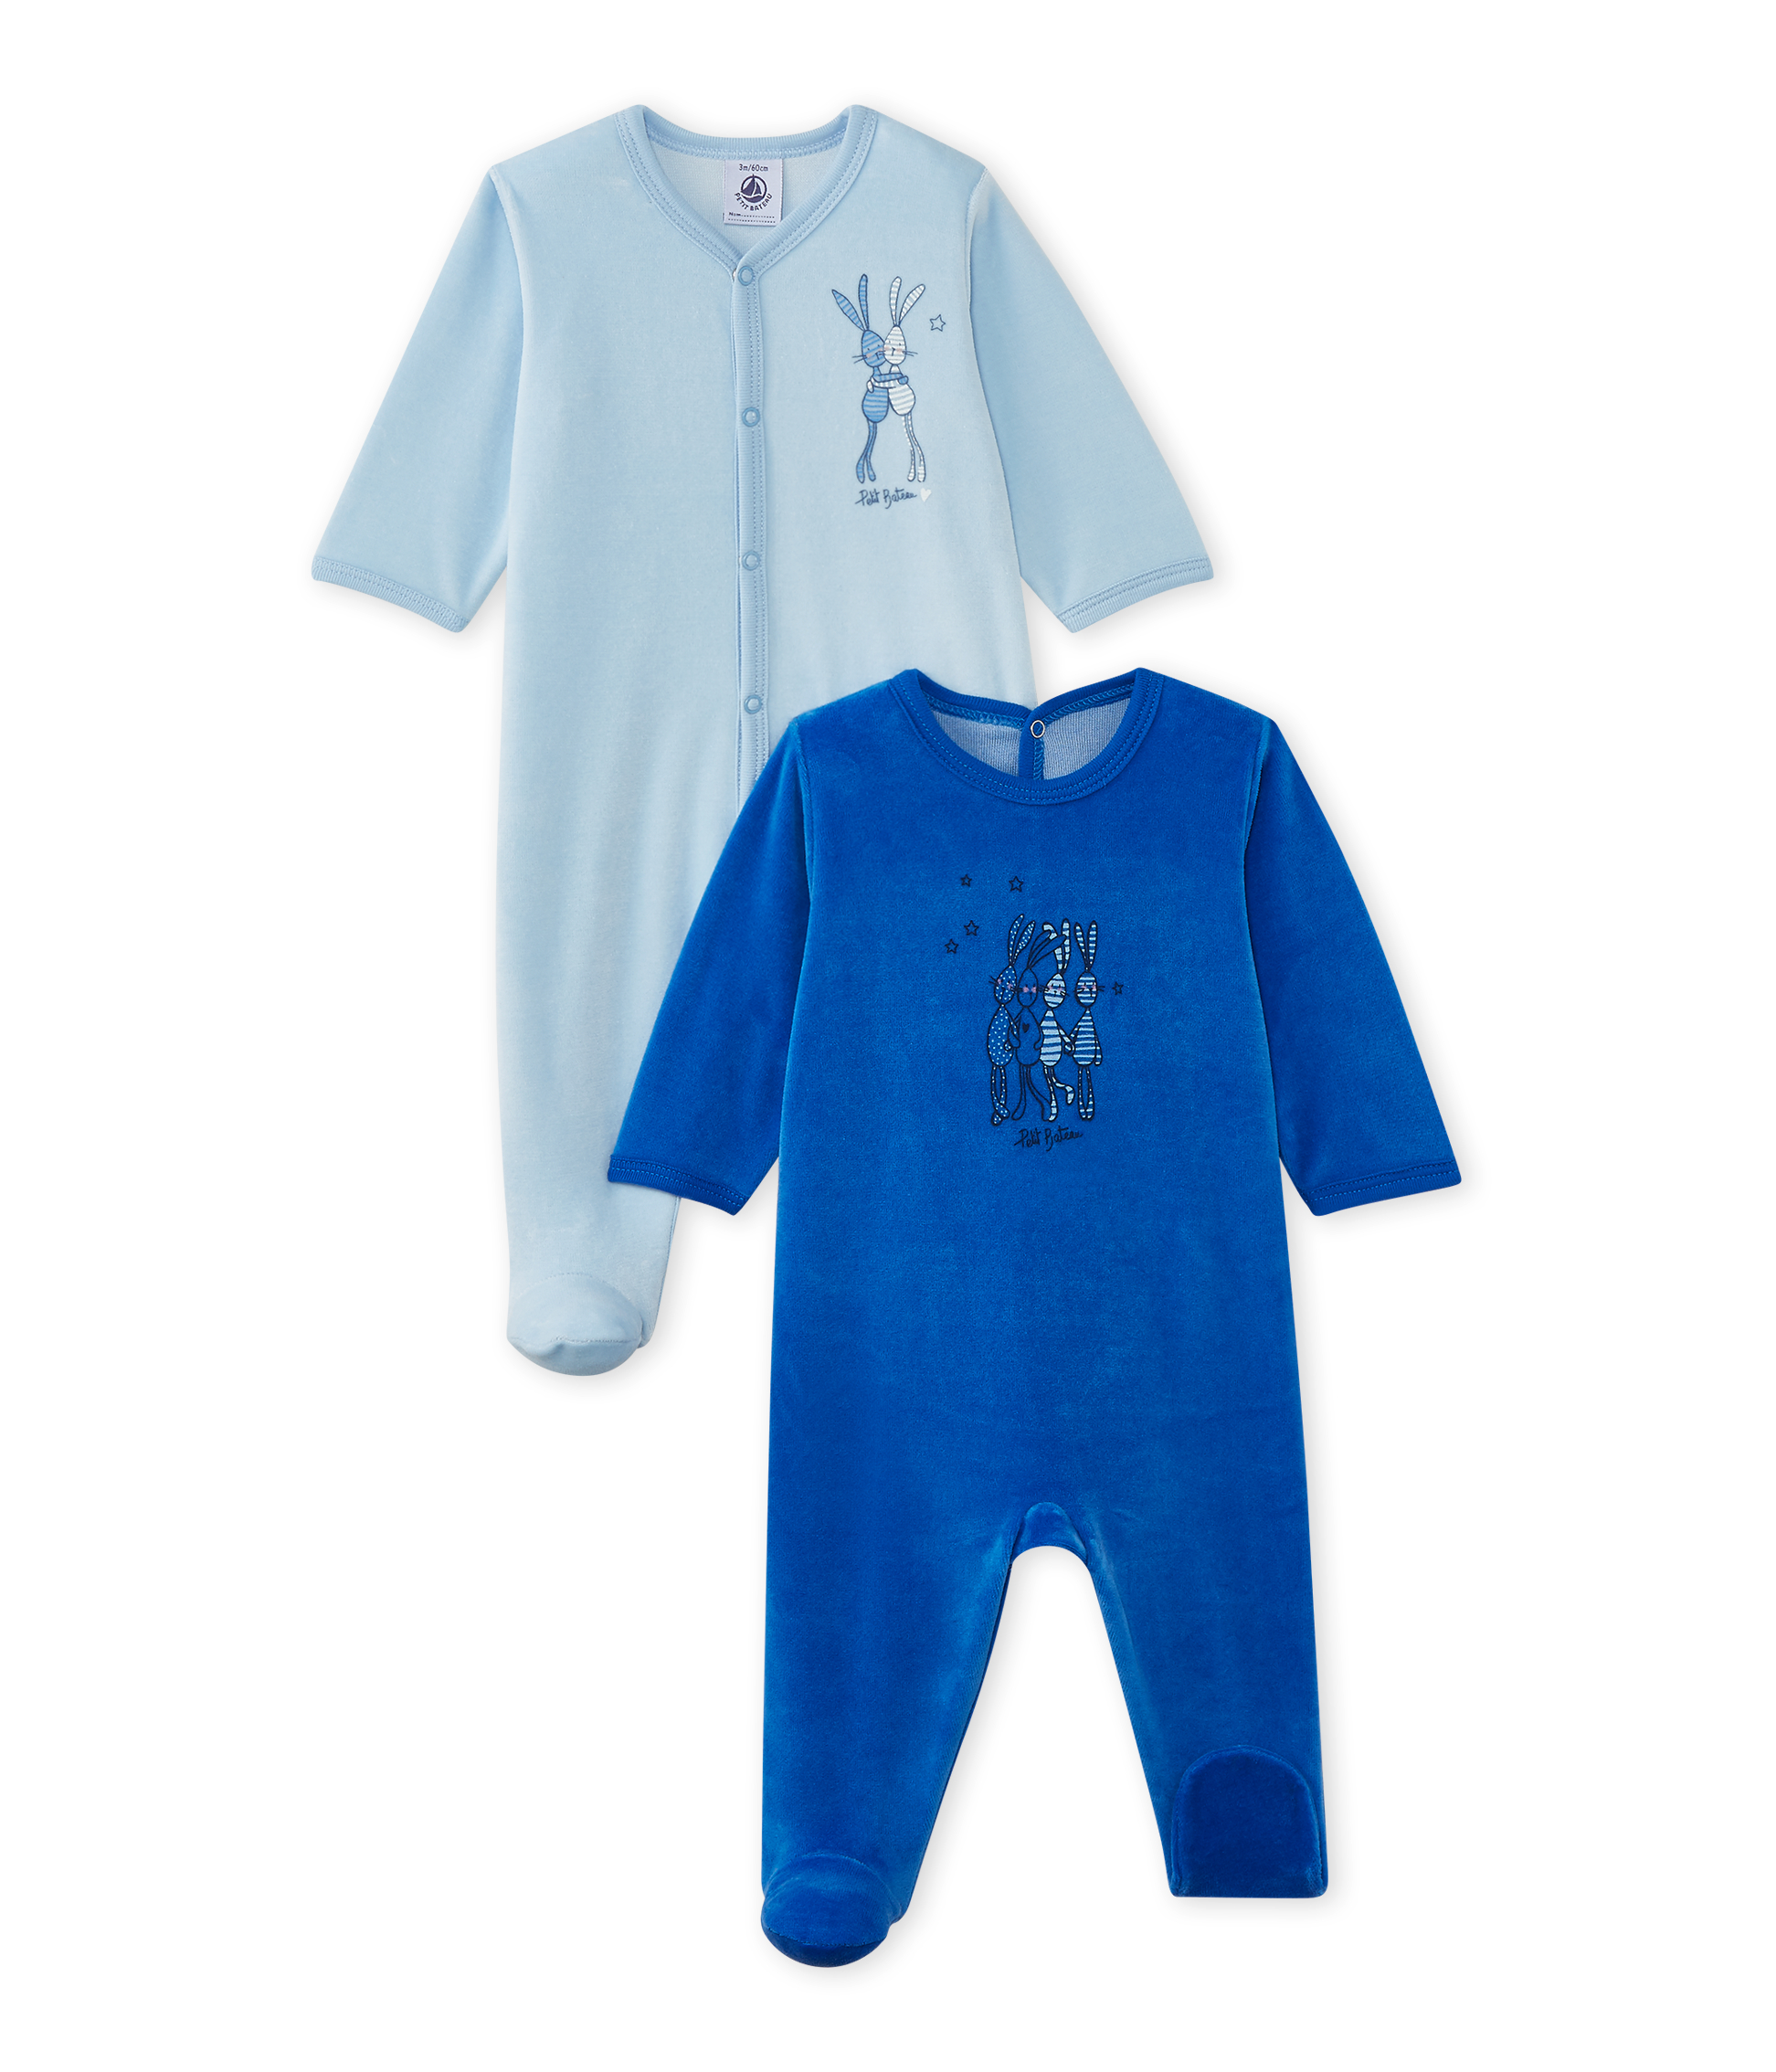 d1dddf65ad9 Set of 2 baby girl's velour sleepsuits | Petit Bateau